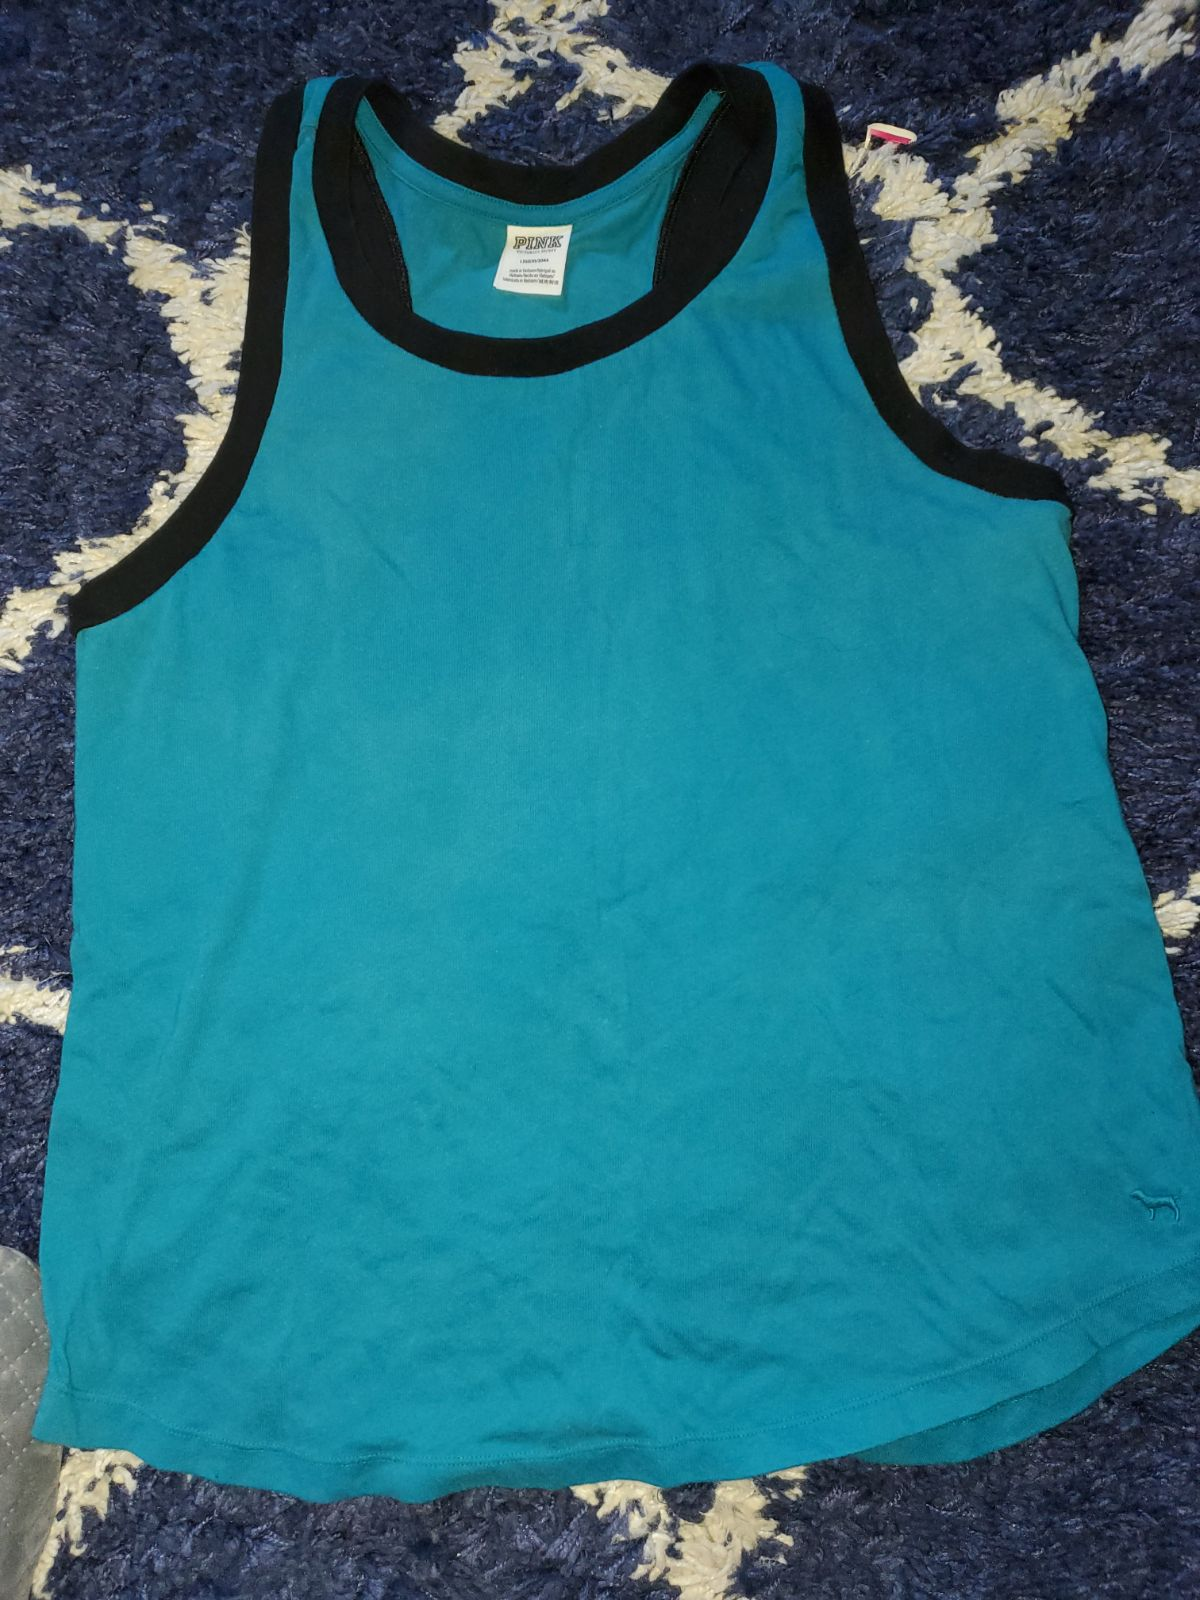 Large vs pink plain tank